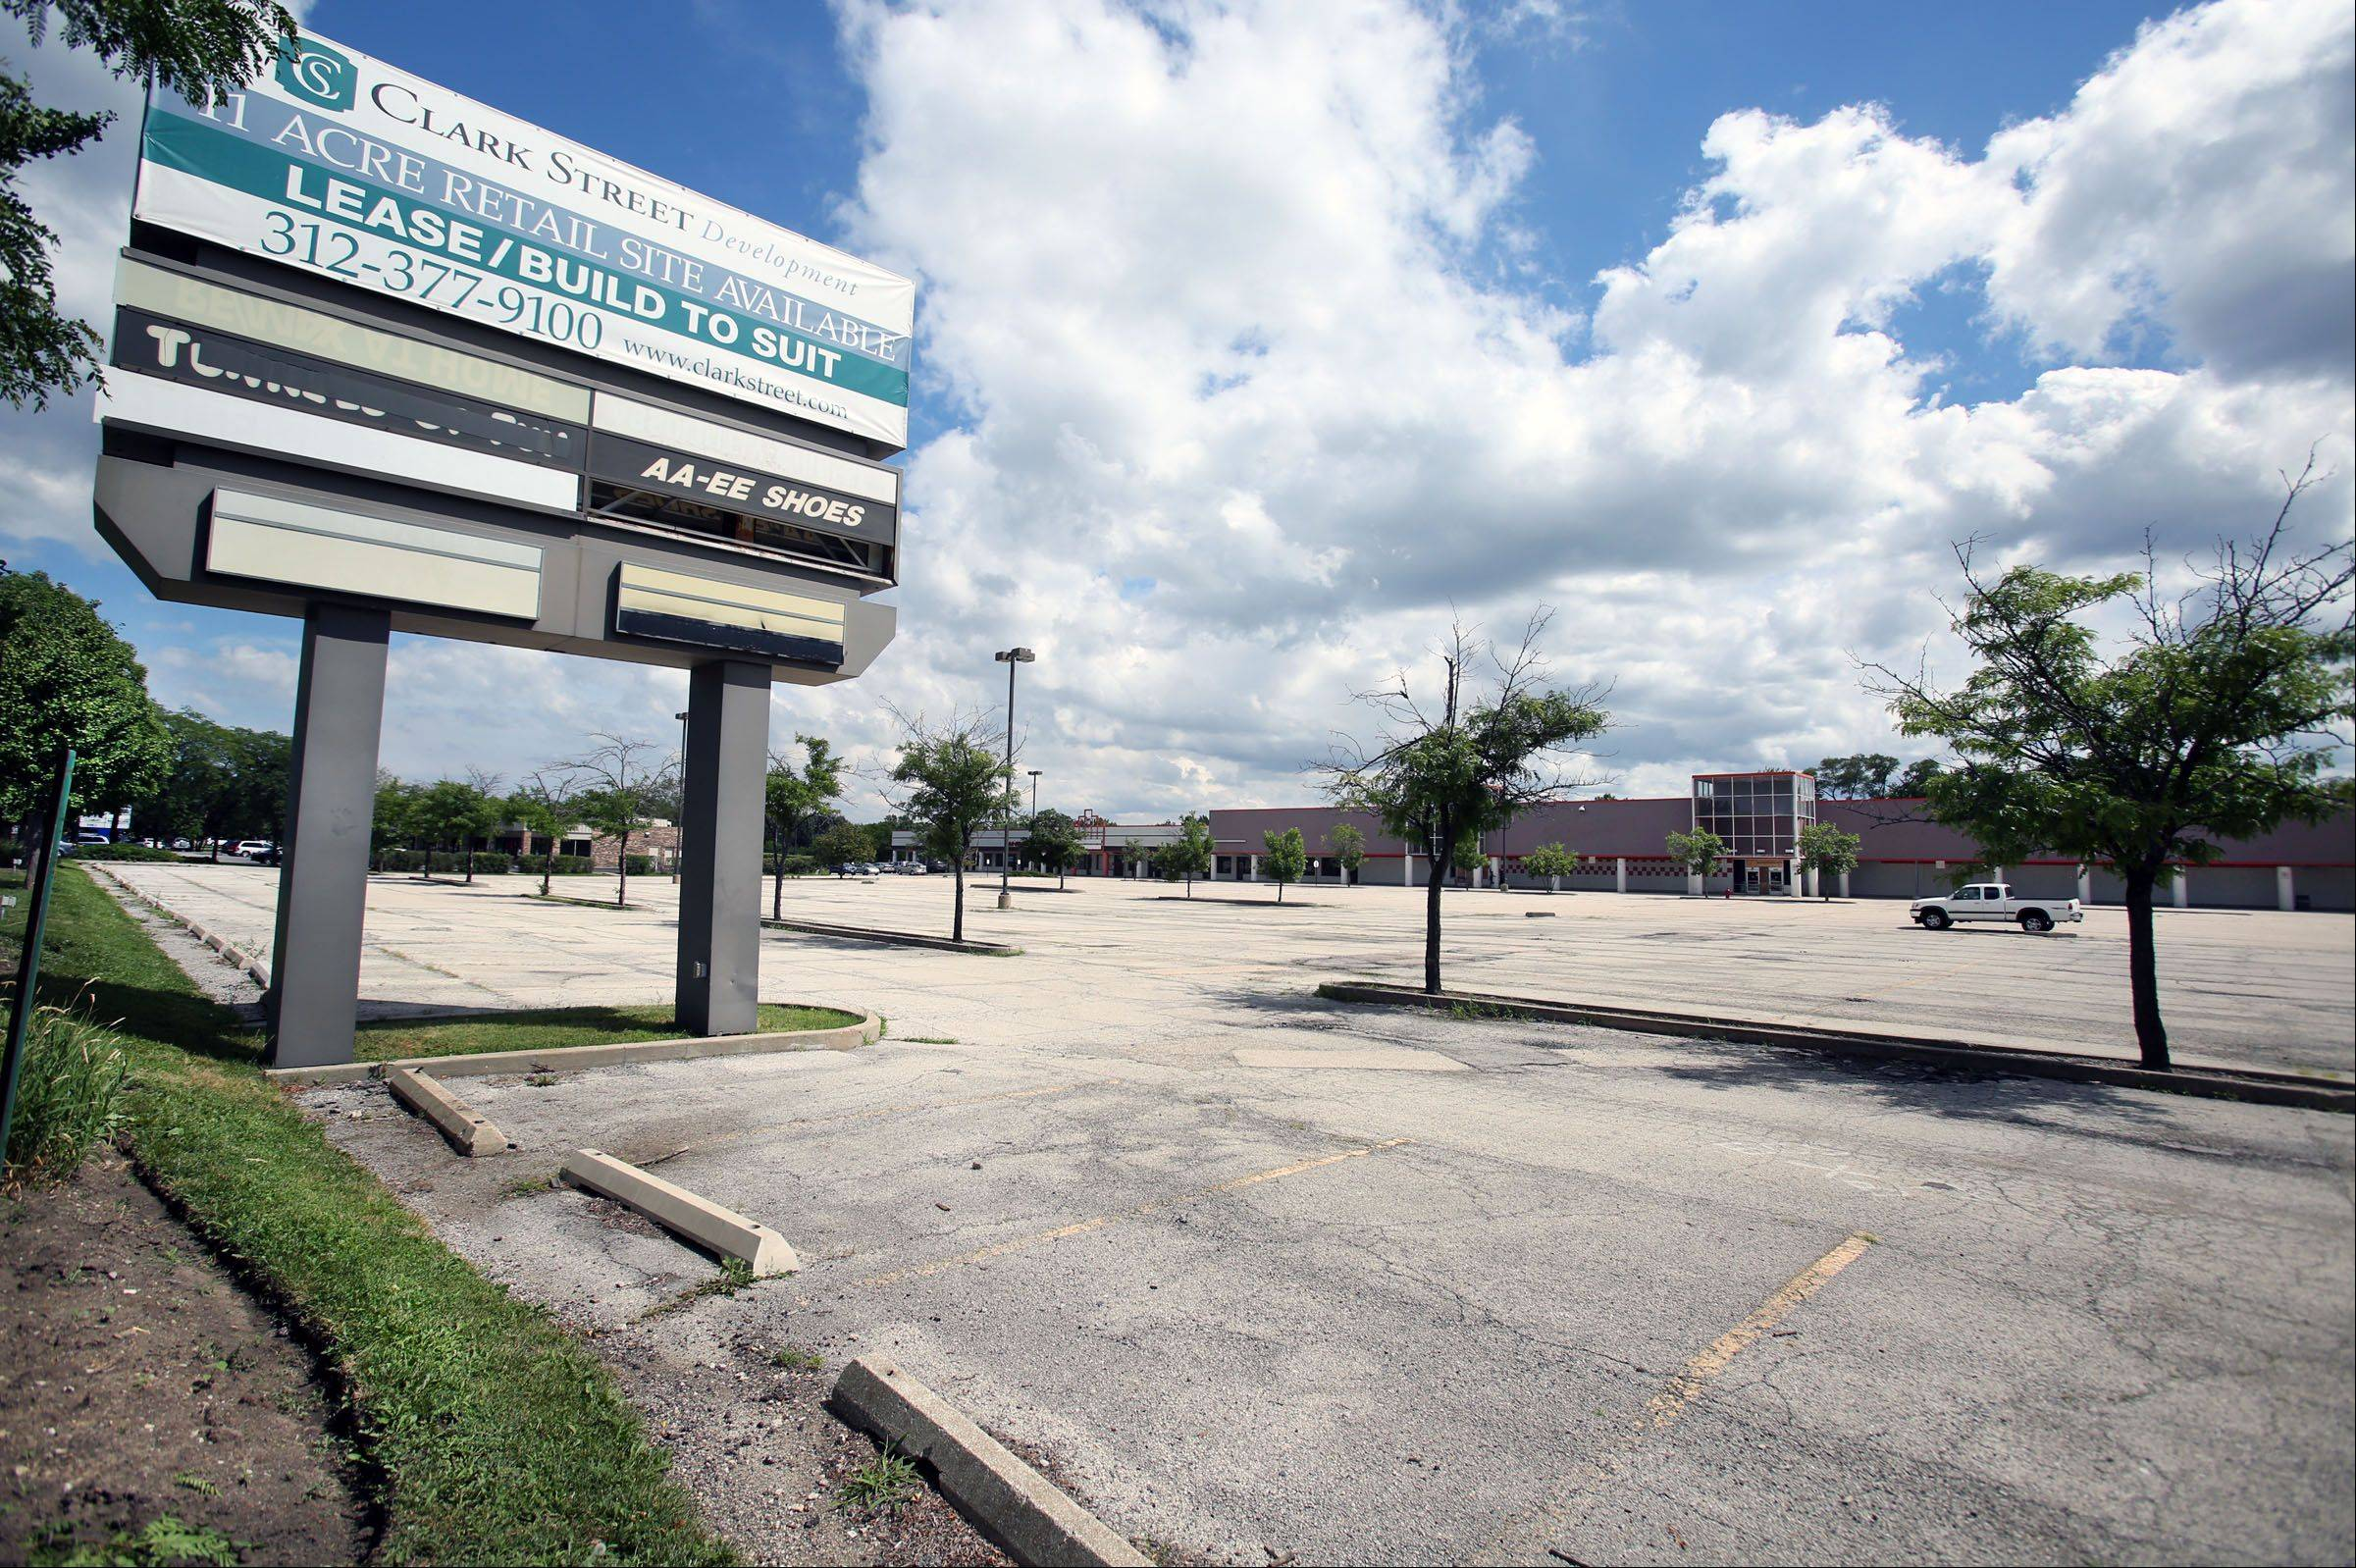 Clark Street Development has announced only one tenant, Uncle Joe's grocery store, for the Rolling Meadows center that once held a Dominick's.